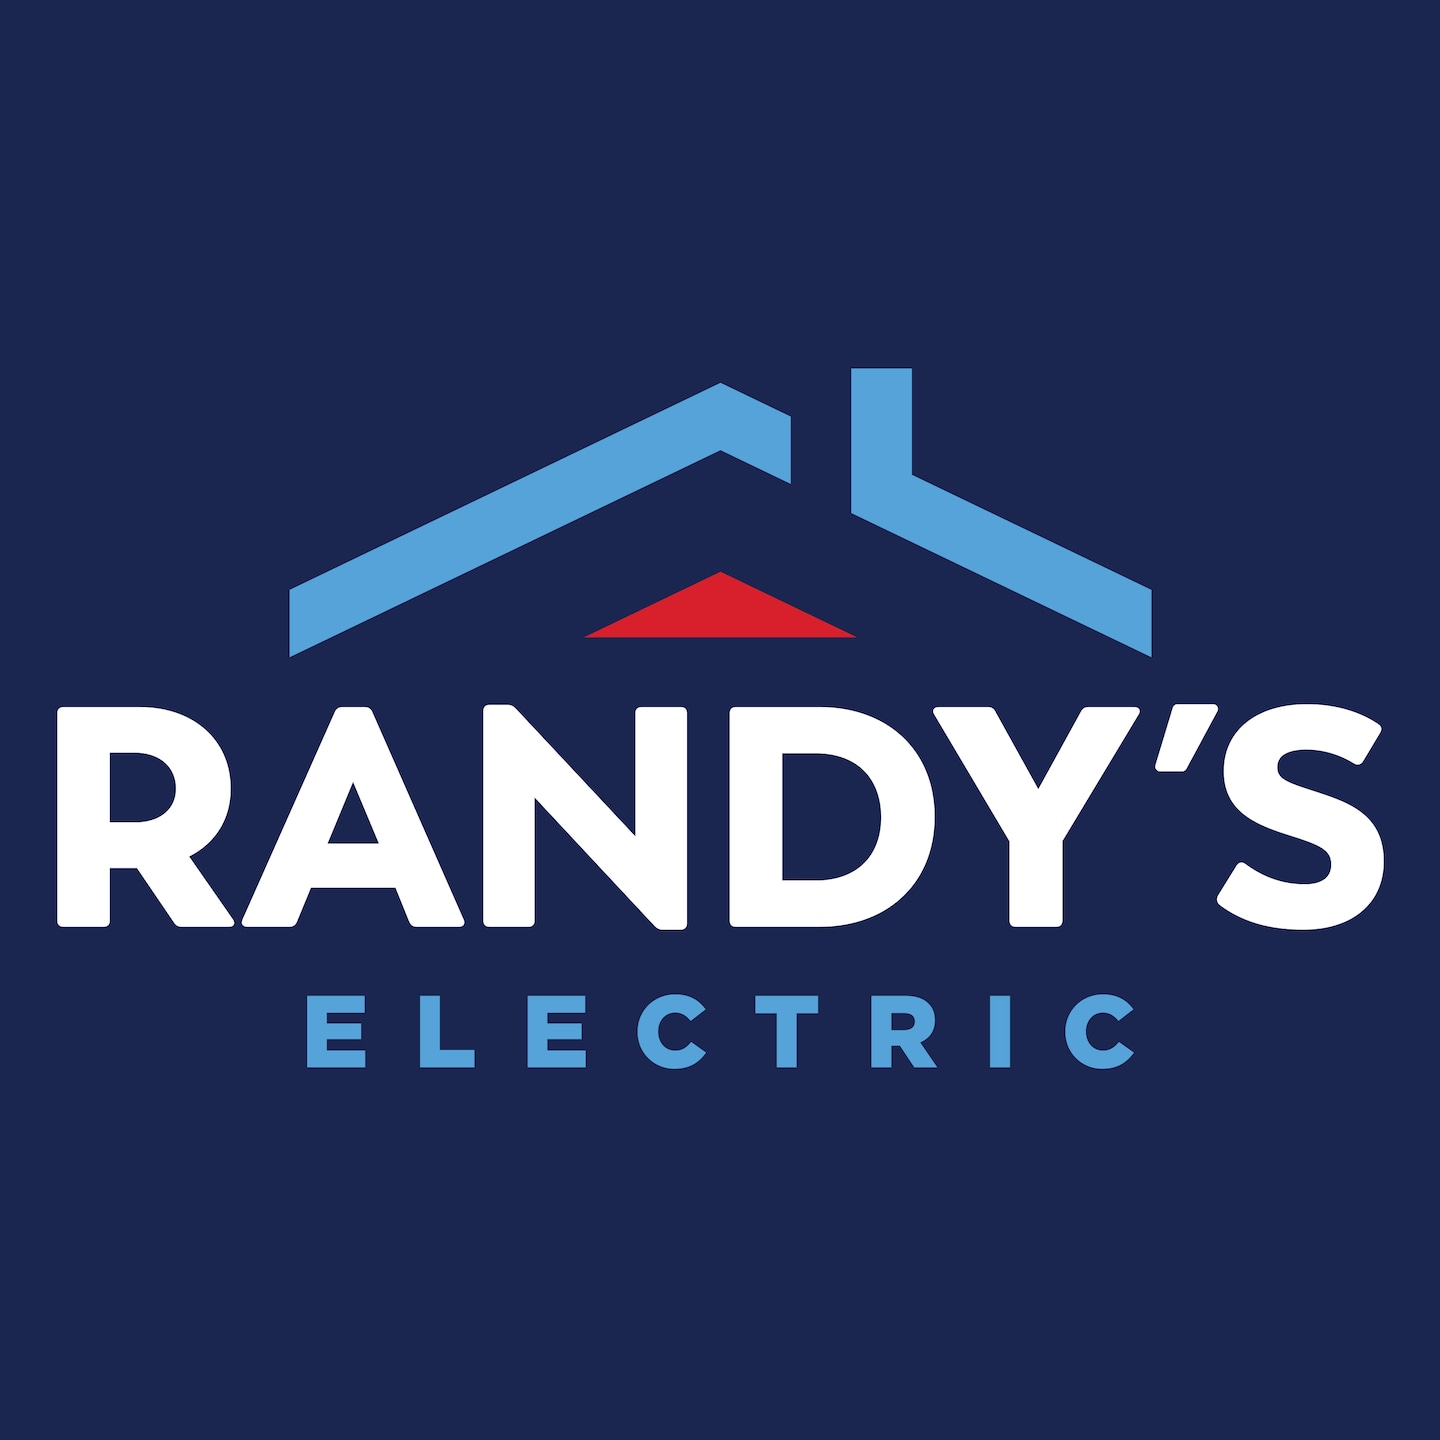 Randy's Electric